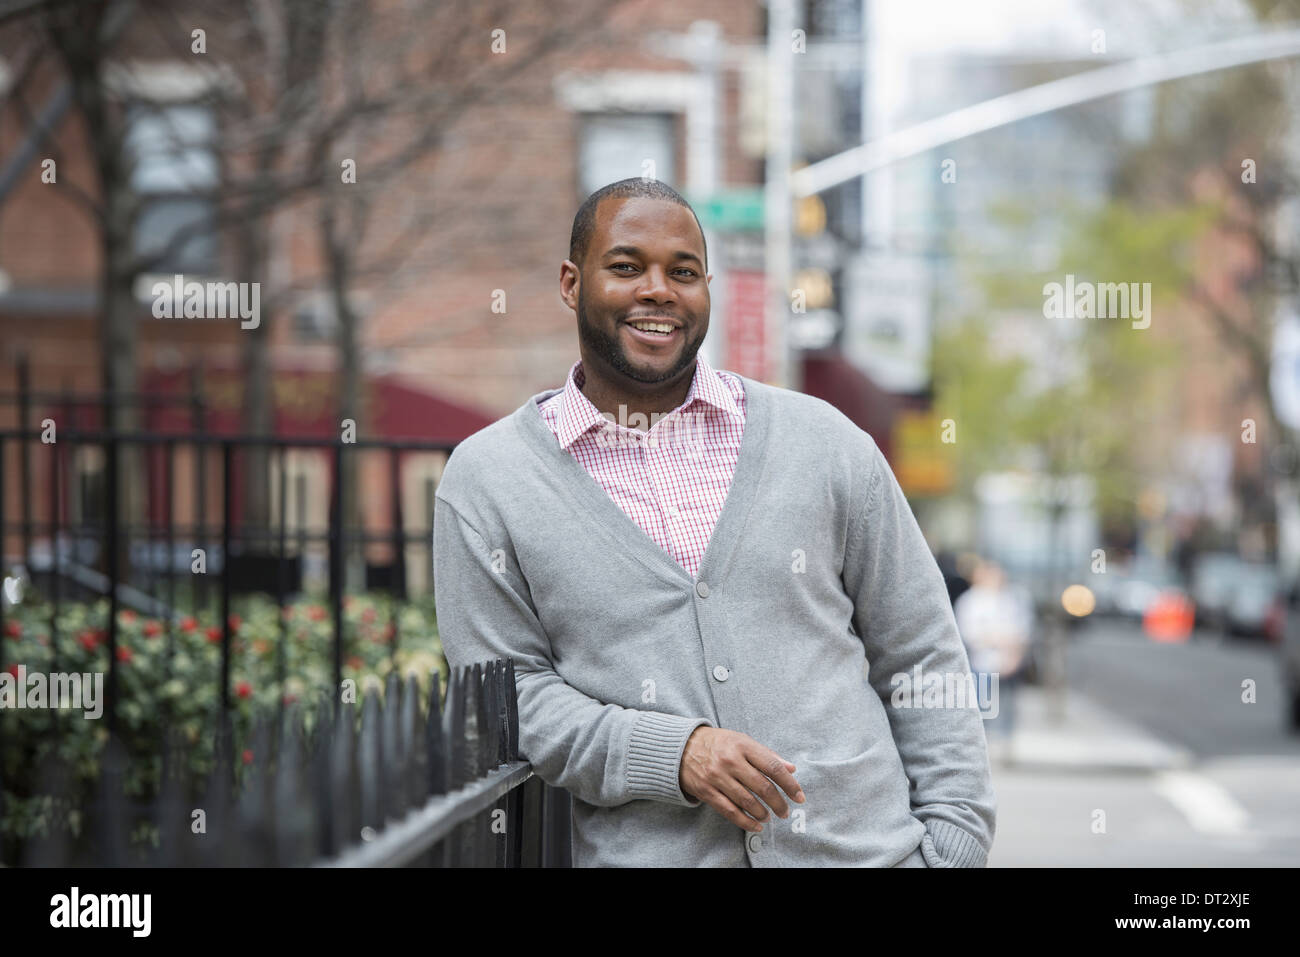 A man leaning against a railing smiling - Stock Image